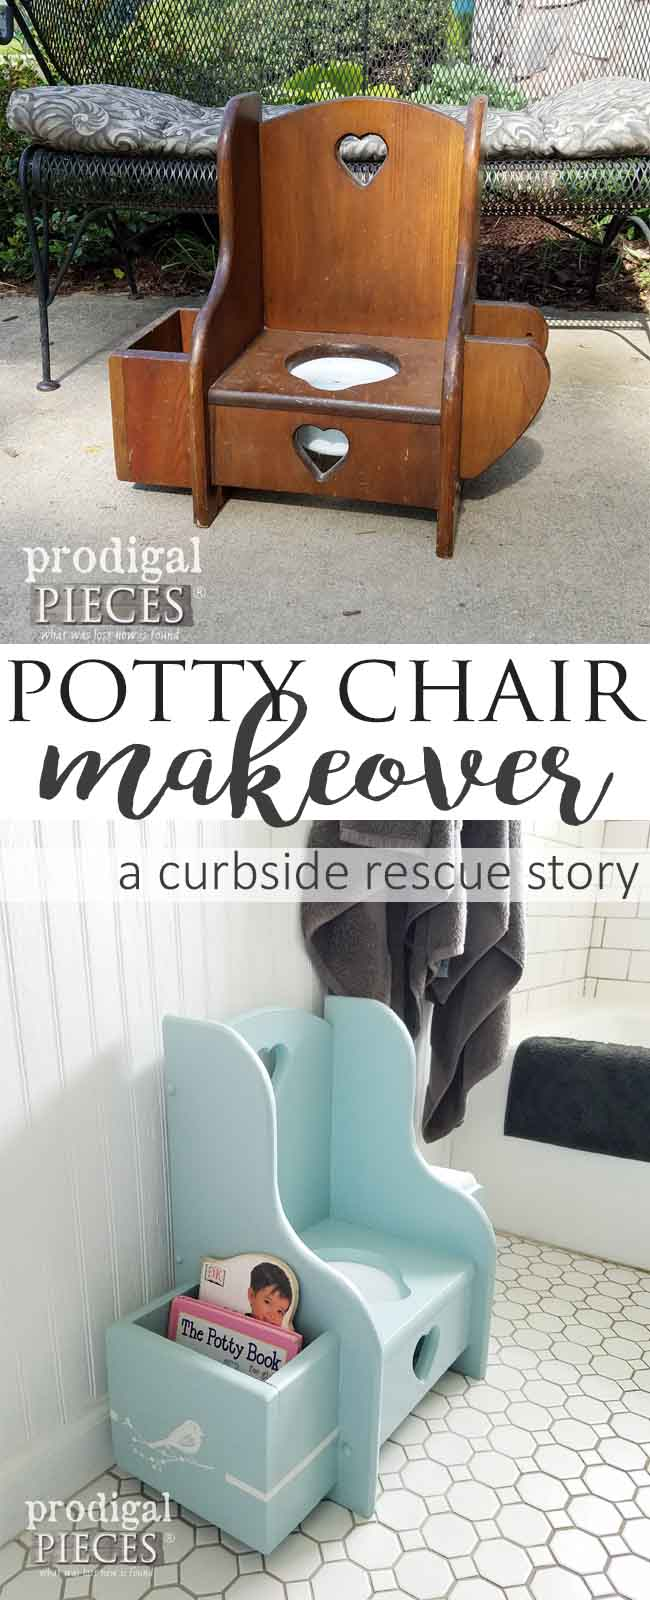 From Curbside to Trashure (one man's trash is another one's treasure), the Potty Chair Makeover is all about that cute factor. Come see how it's done at Prodigal Pieces | prodigalpieces.com